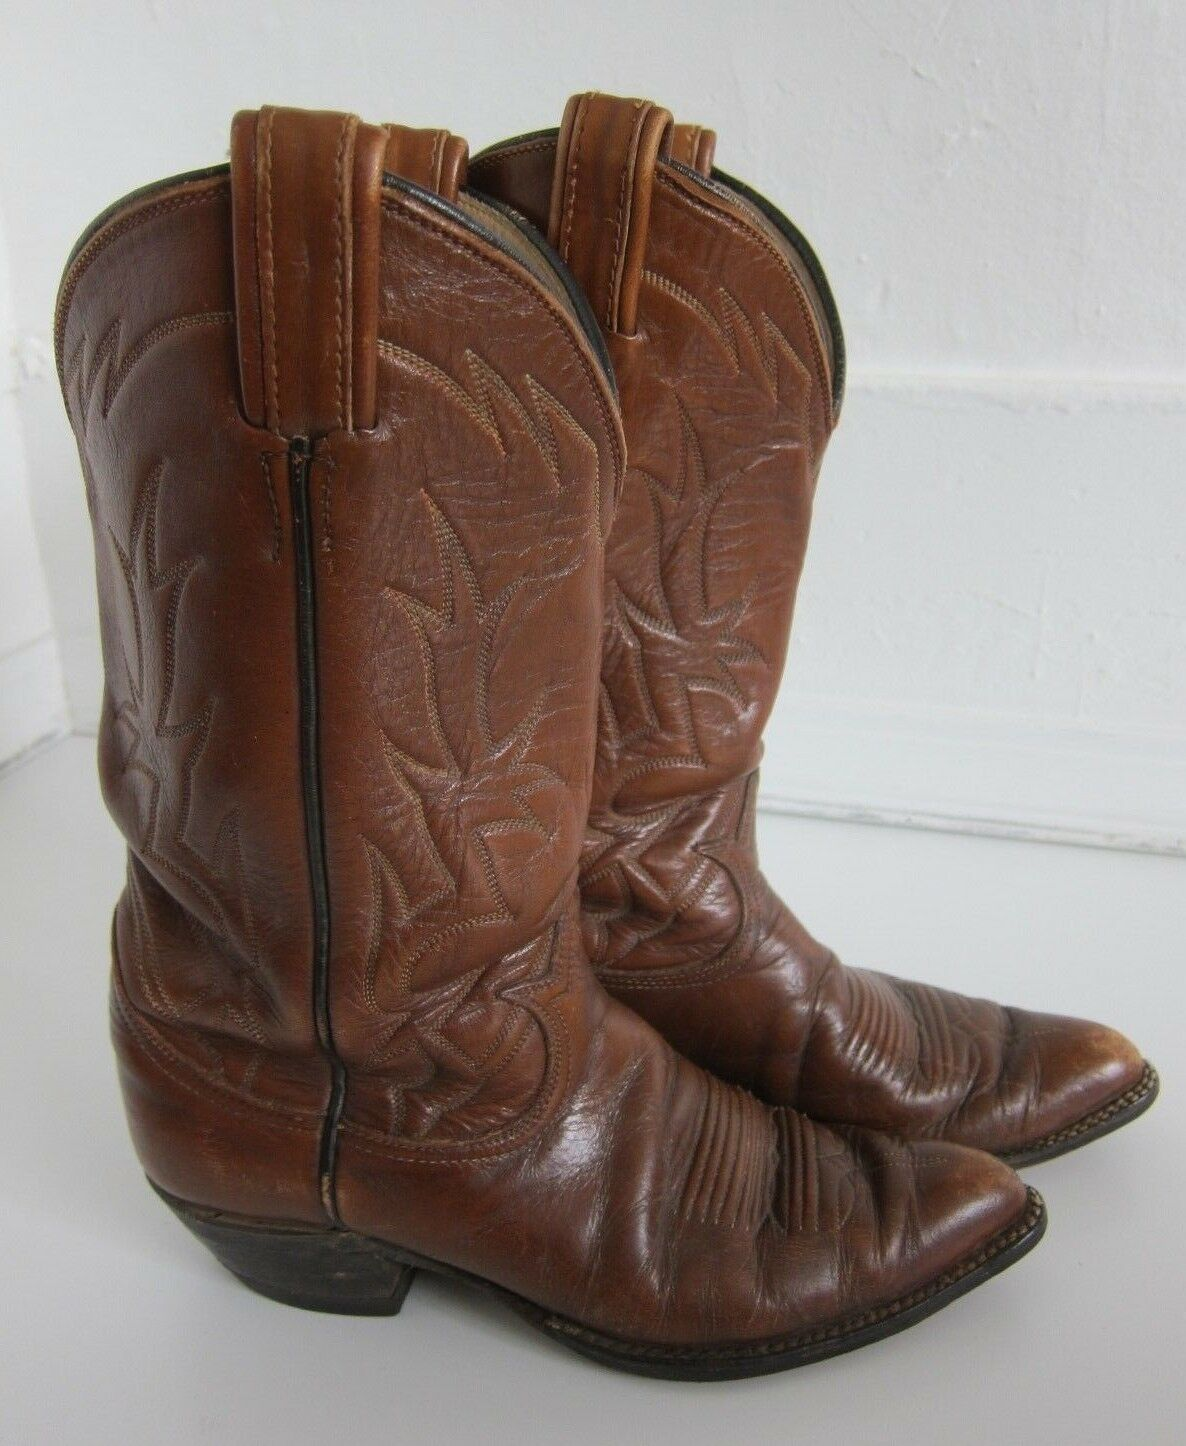 Vintage Tony Lama Tan Brown Leather Western Cowboy Boot Women's Size 7